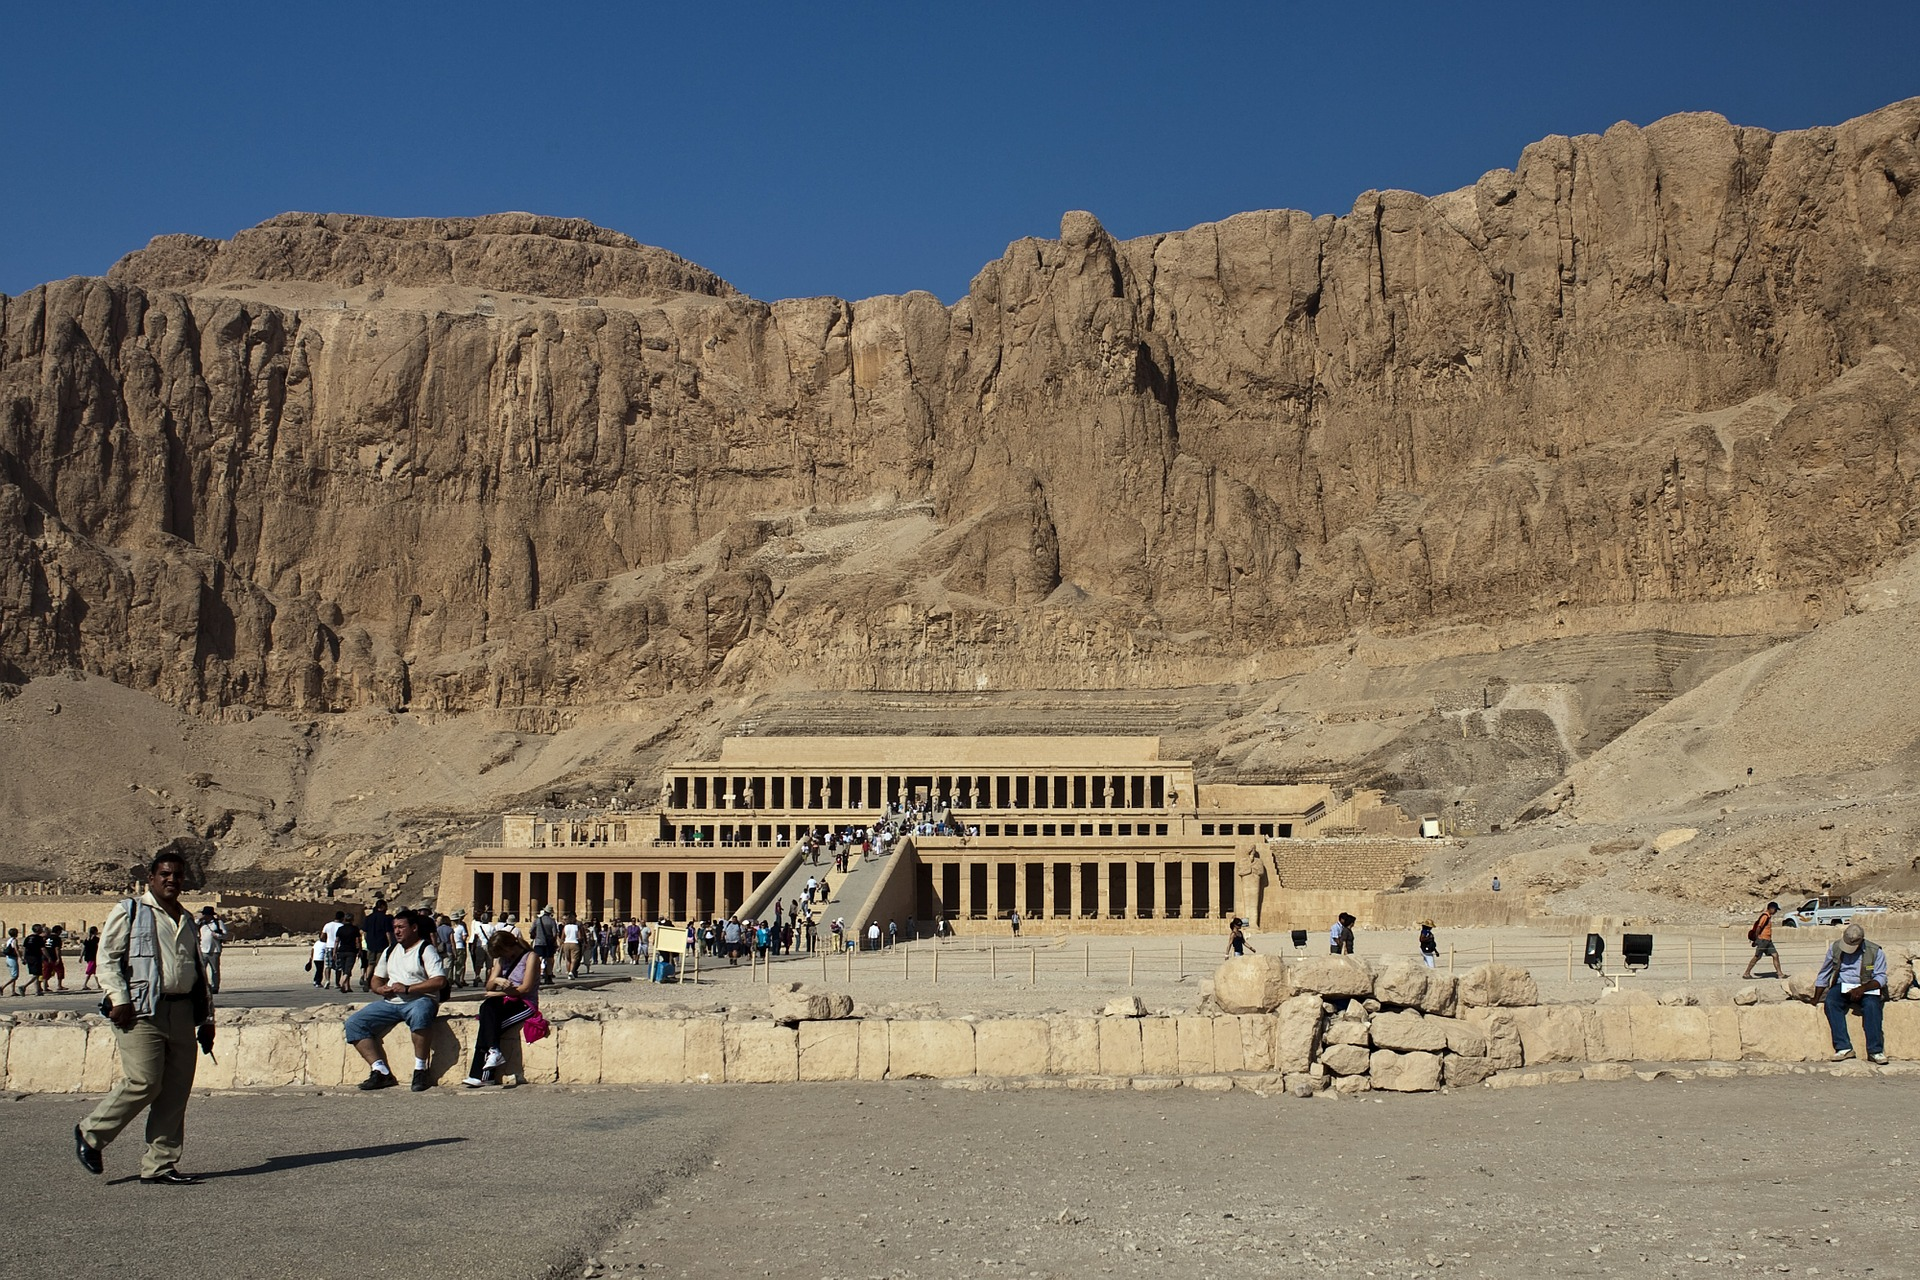 Day 4: Disembarkation, Visit Luxor West Bank – Departure transfer